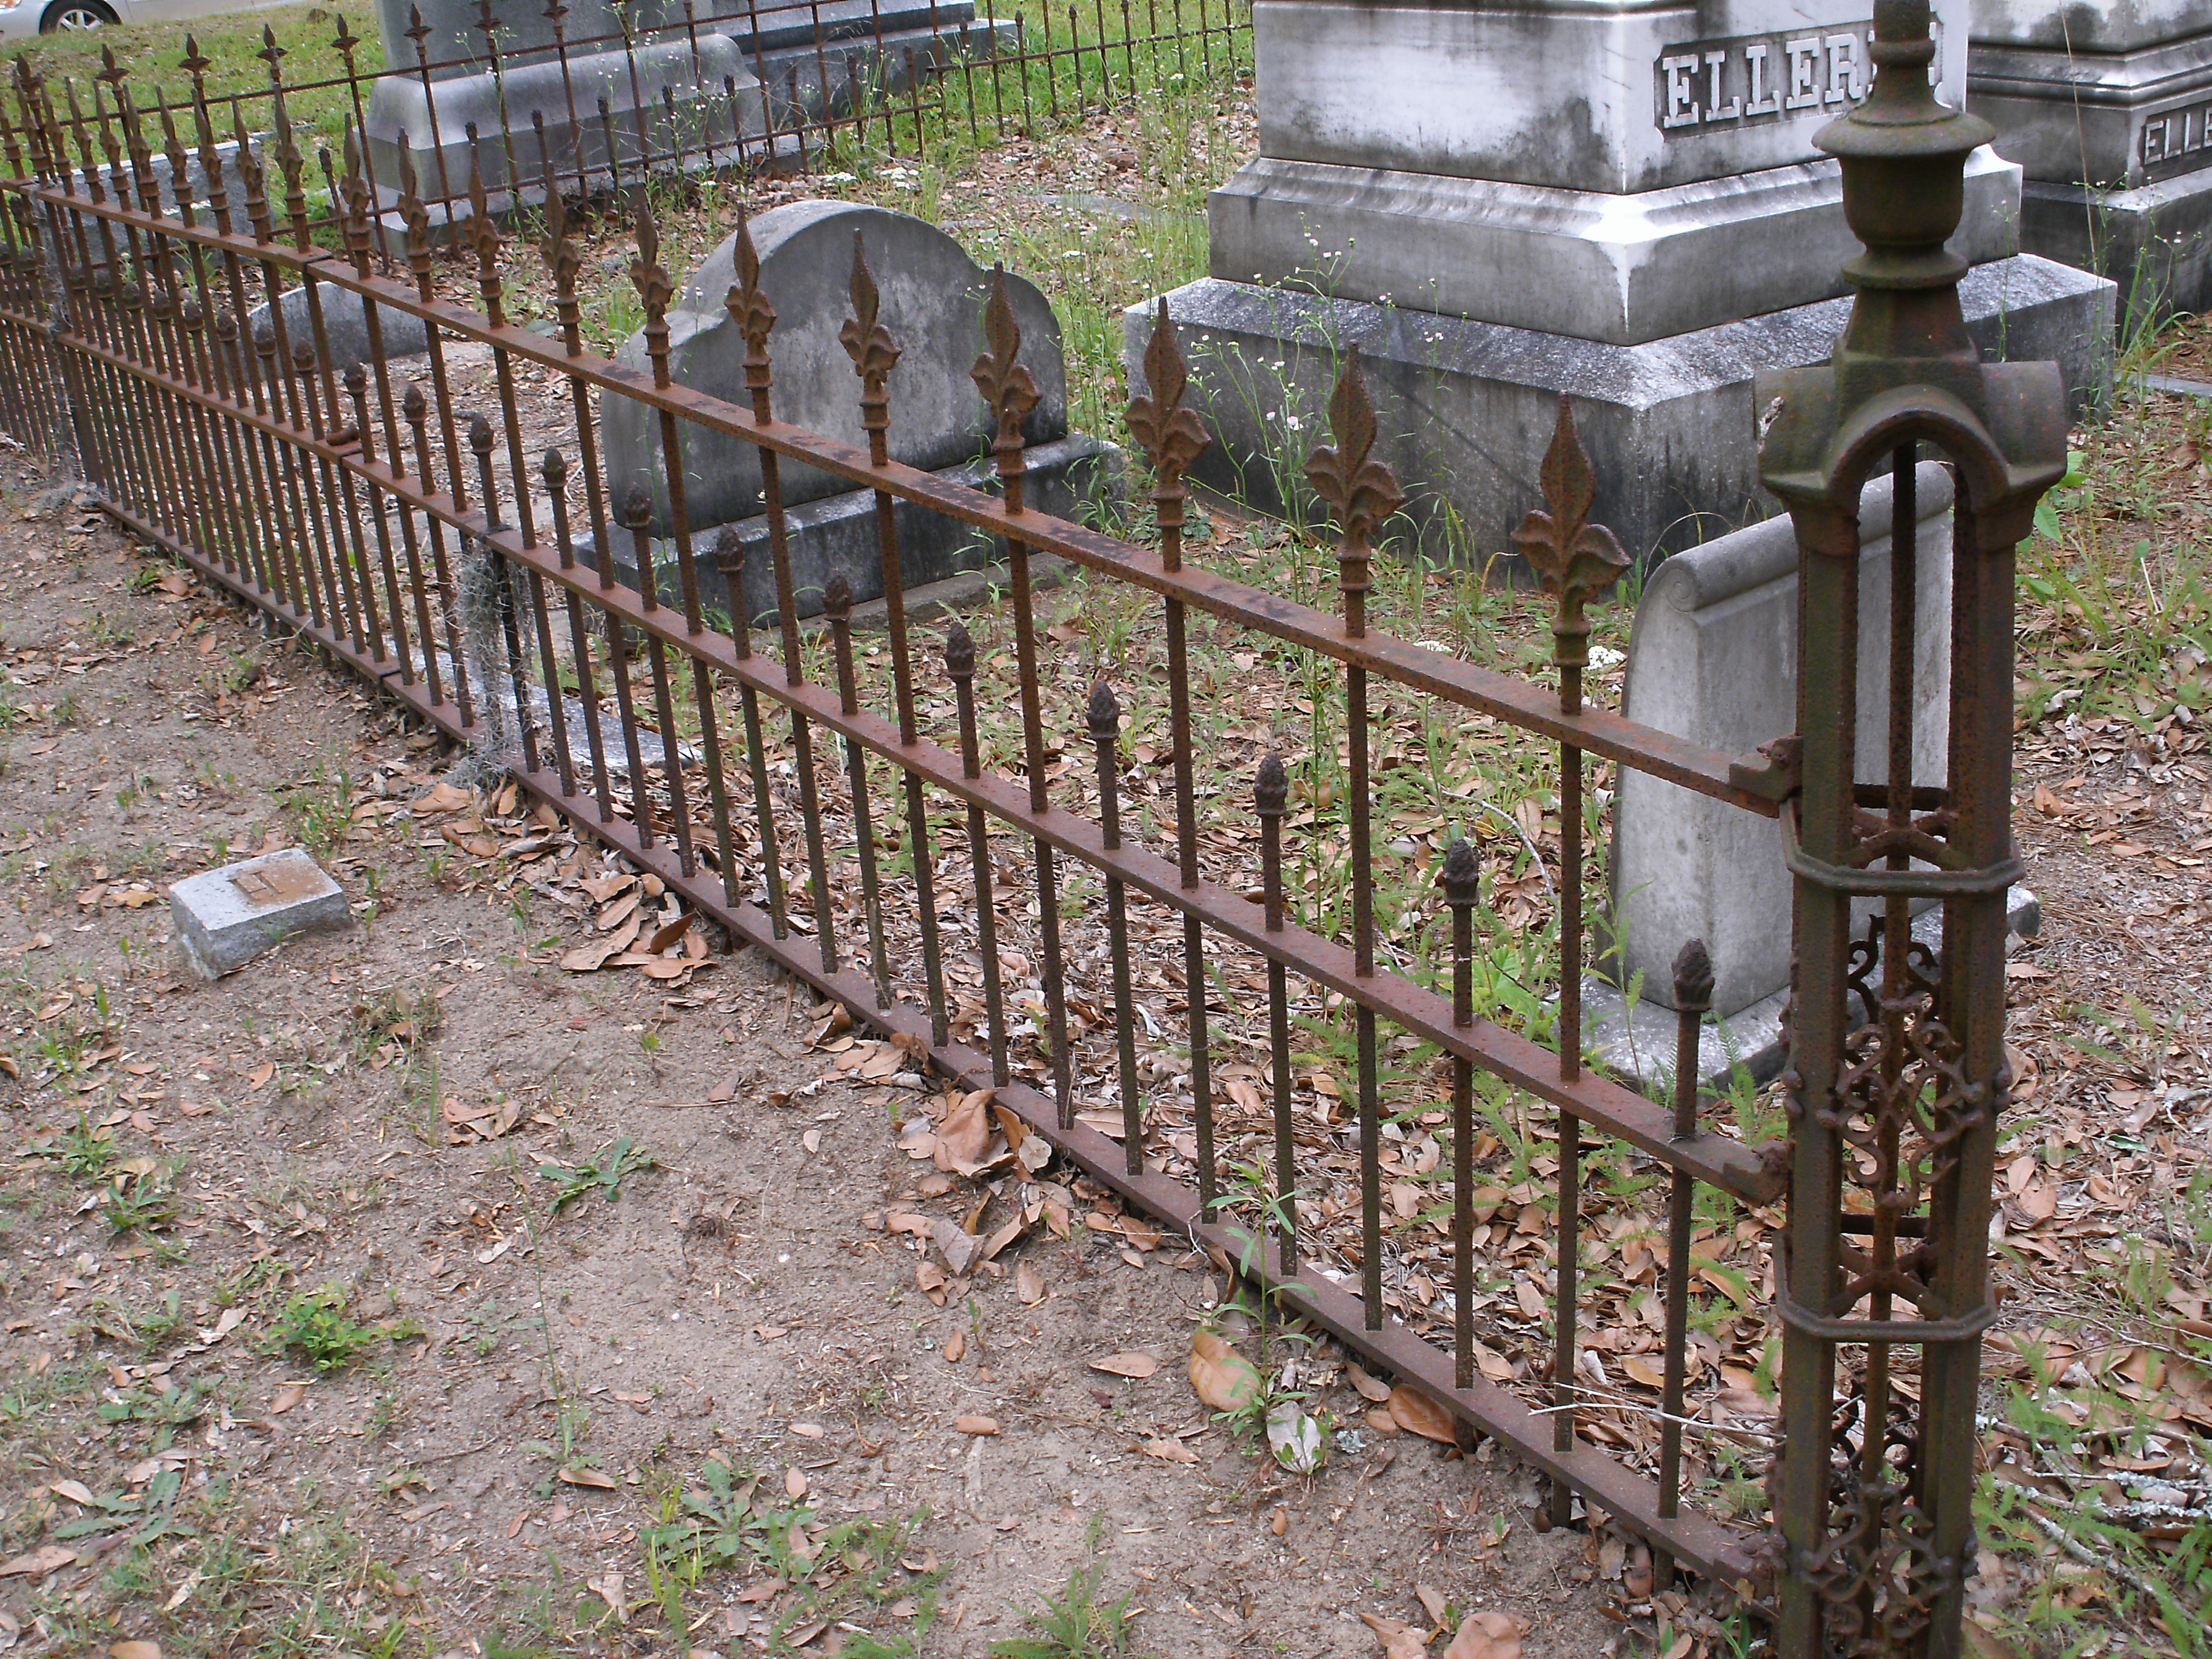 Wrought Iron Fencing Being Stolen From Governor s Grave – The Dillon